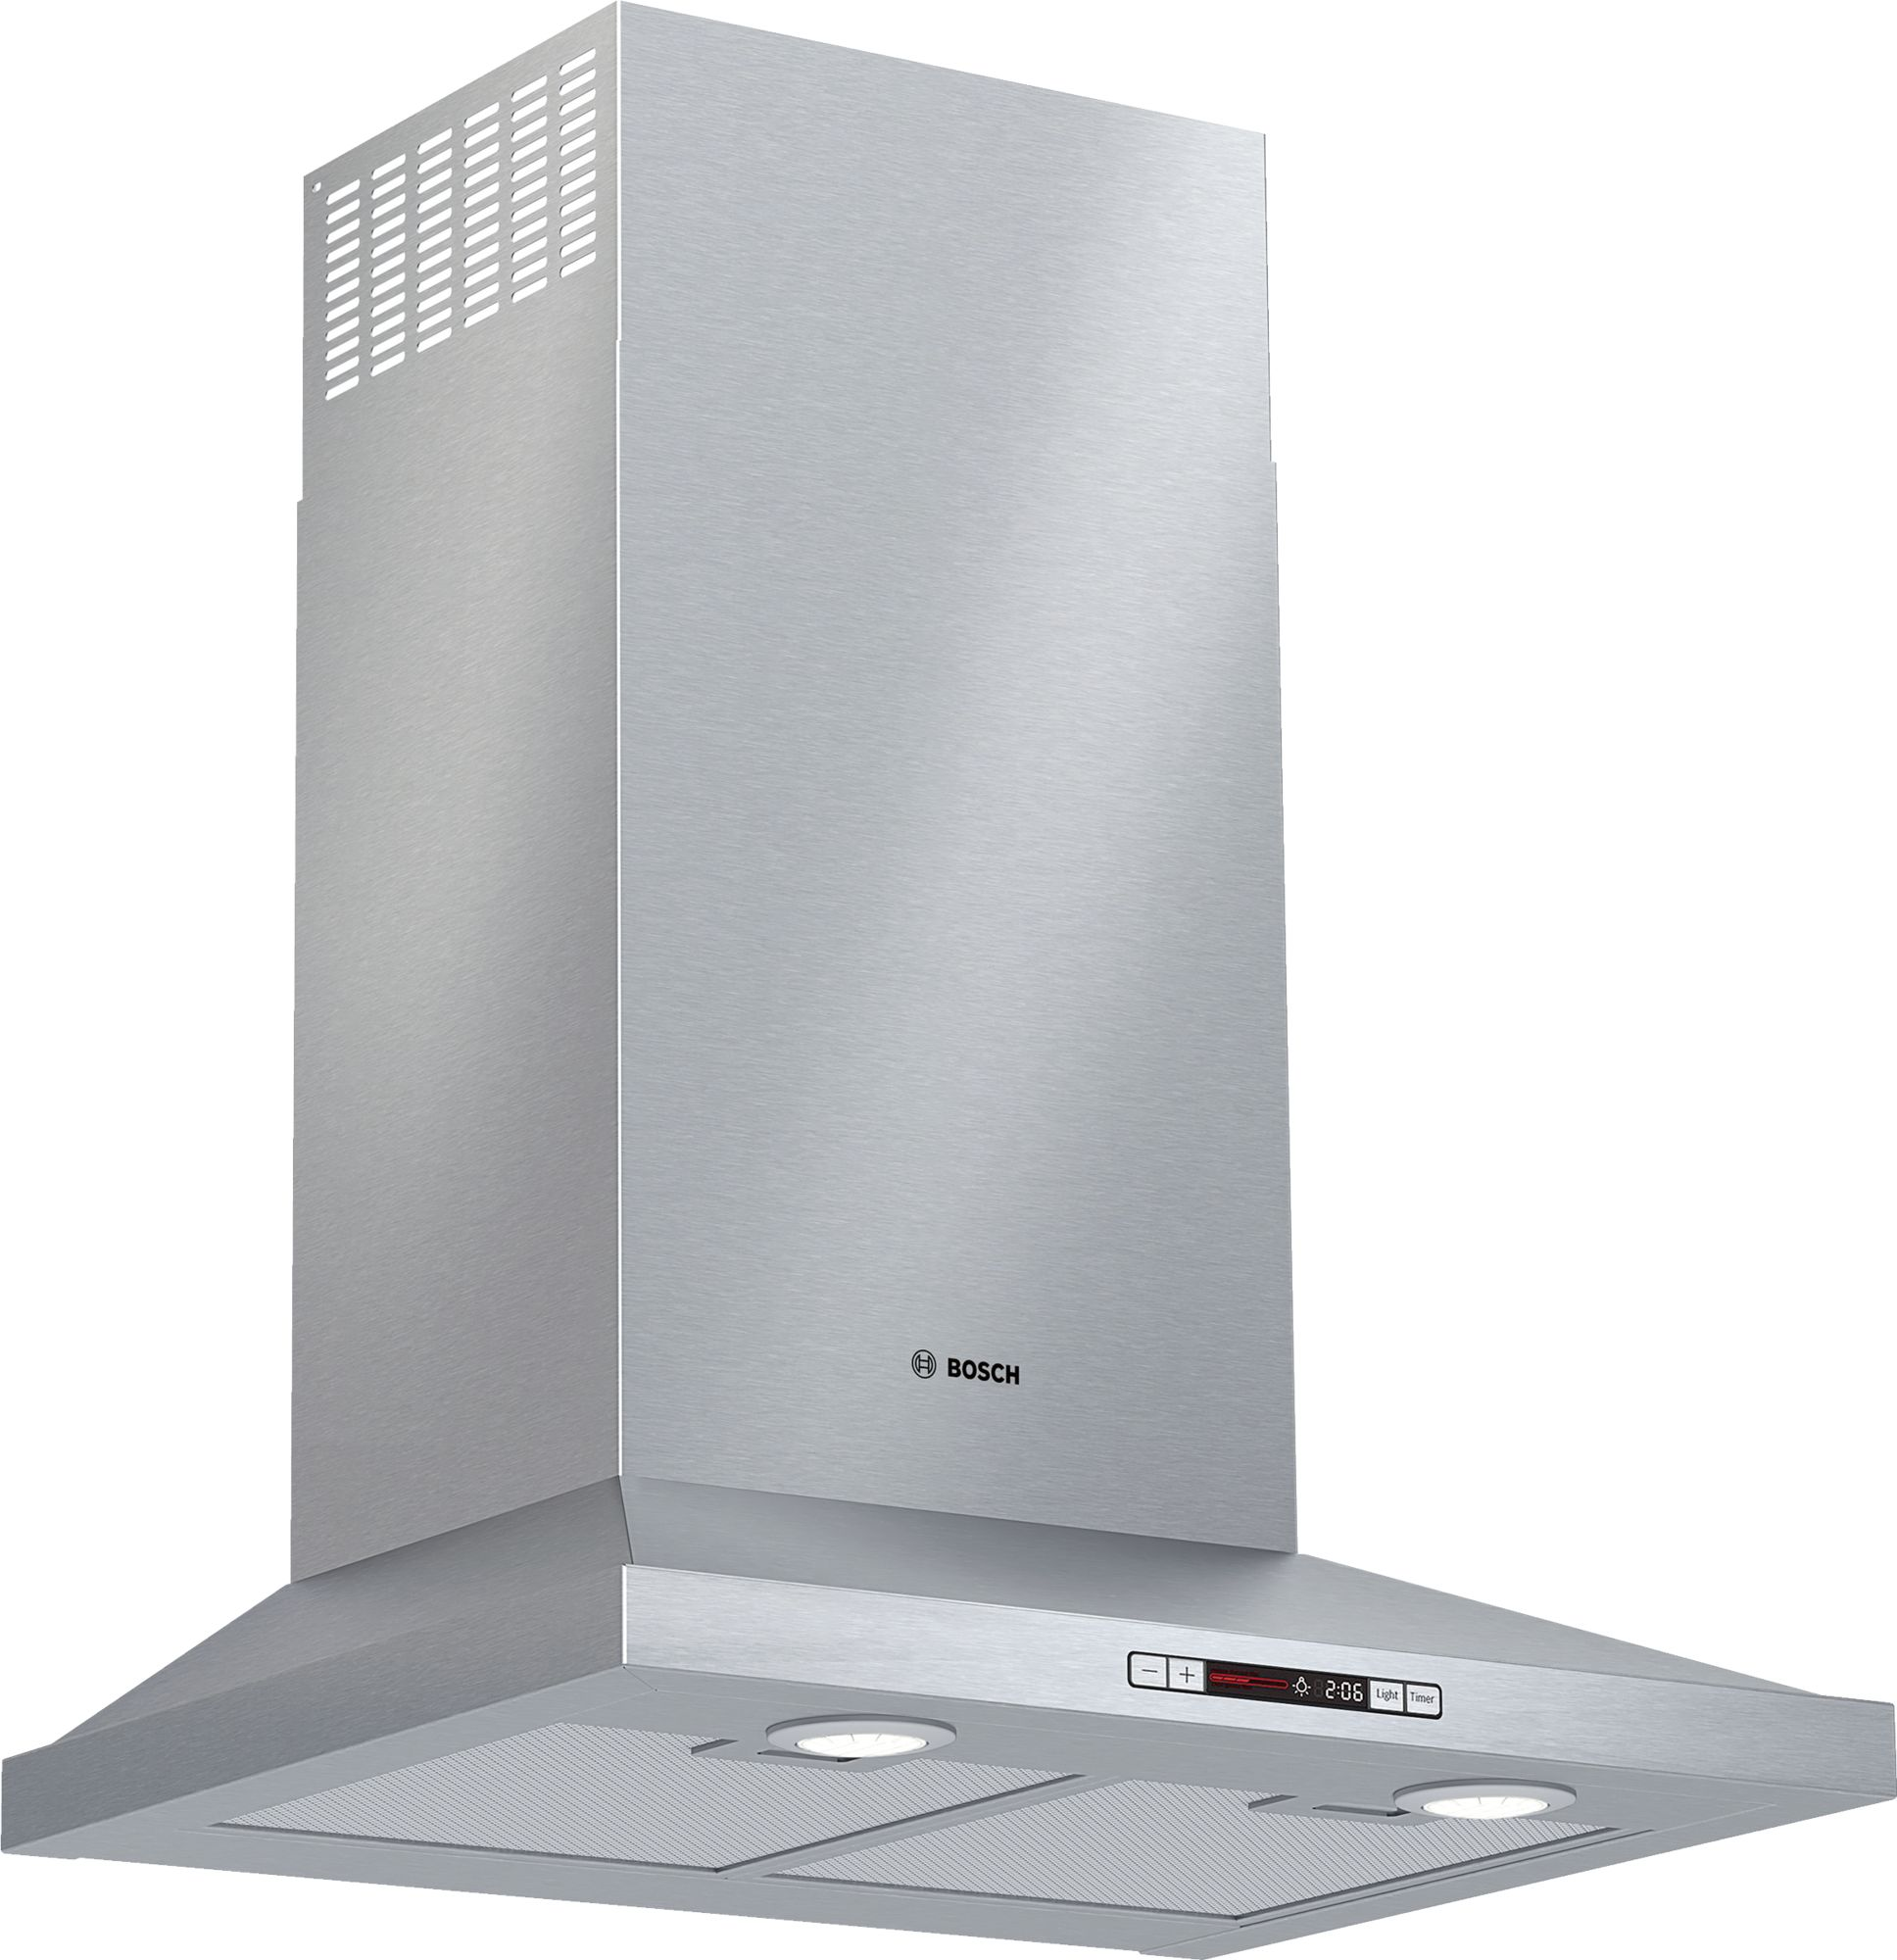 BOSCH | WALL-CHIMNEY HOODS | 300 SERIES | STAINLESS 24%22.jpg